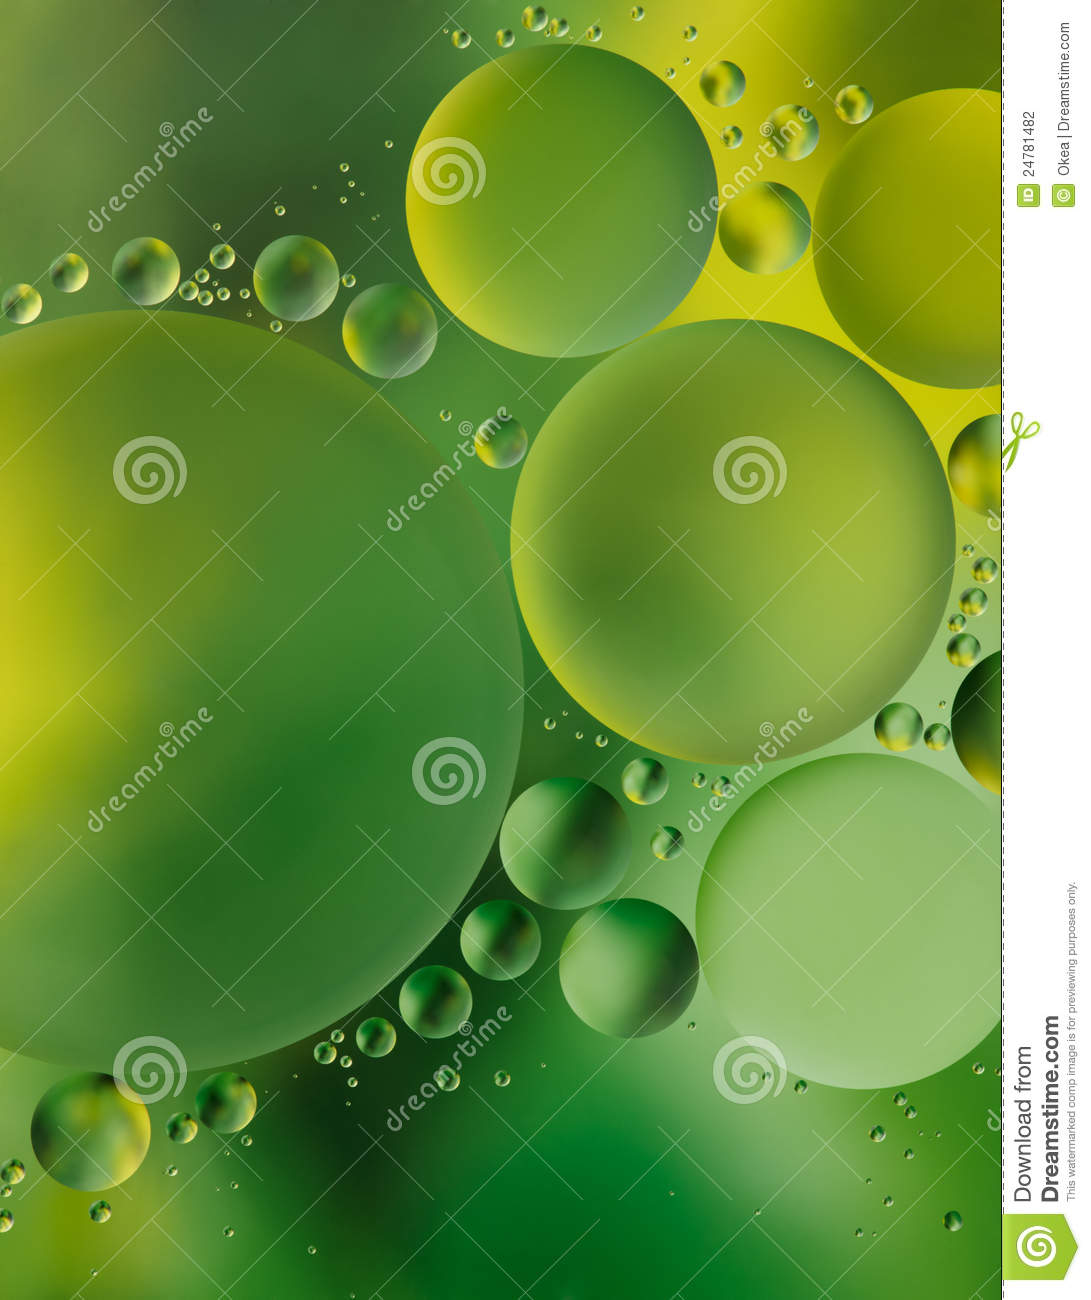 Green bubble background